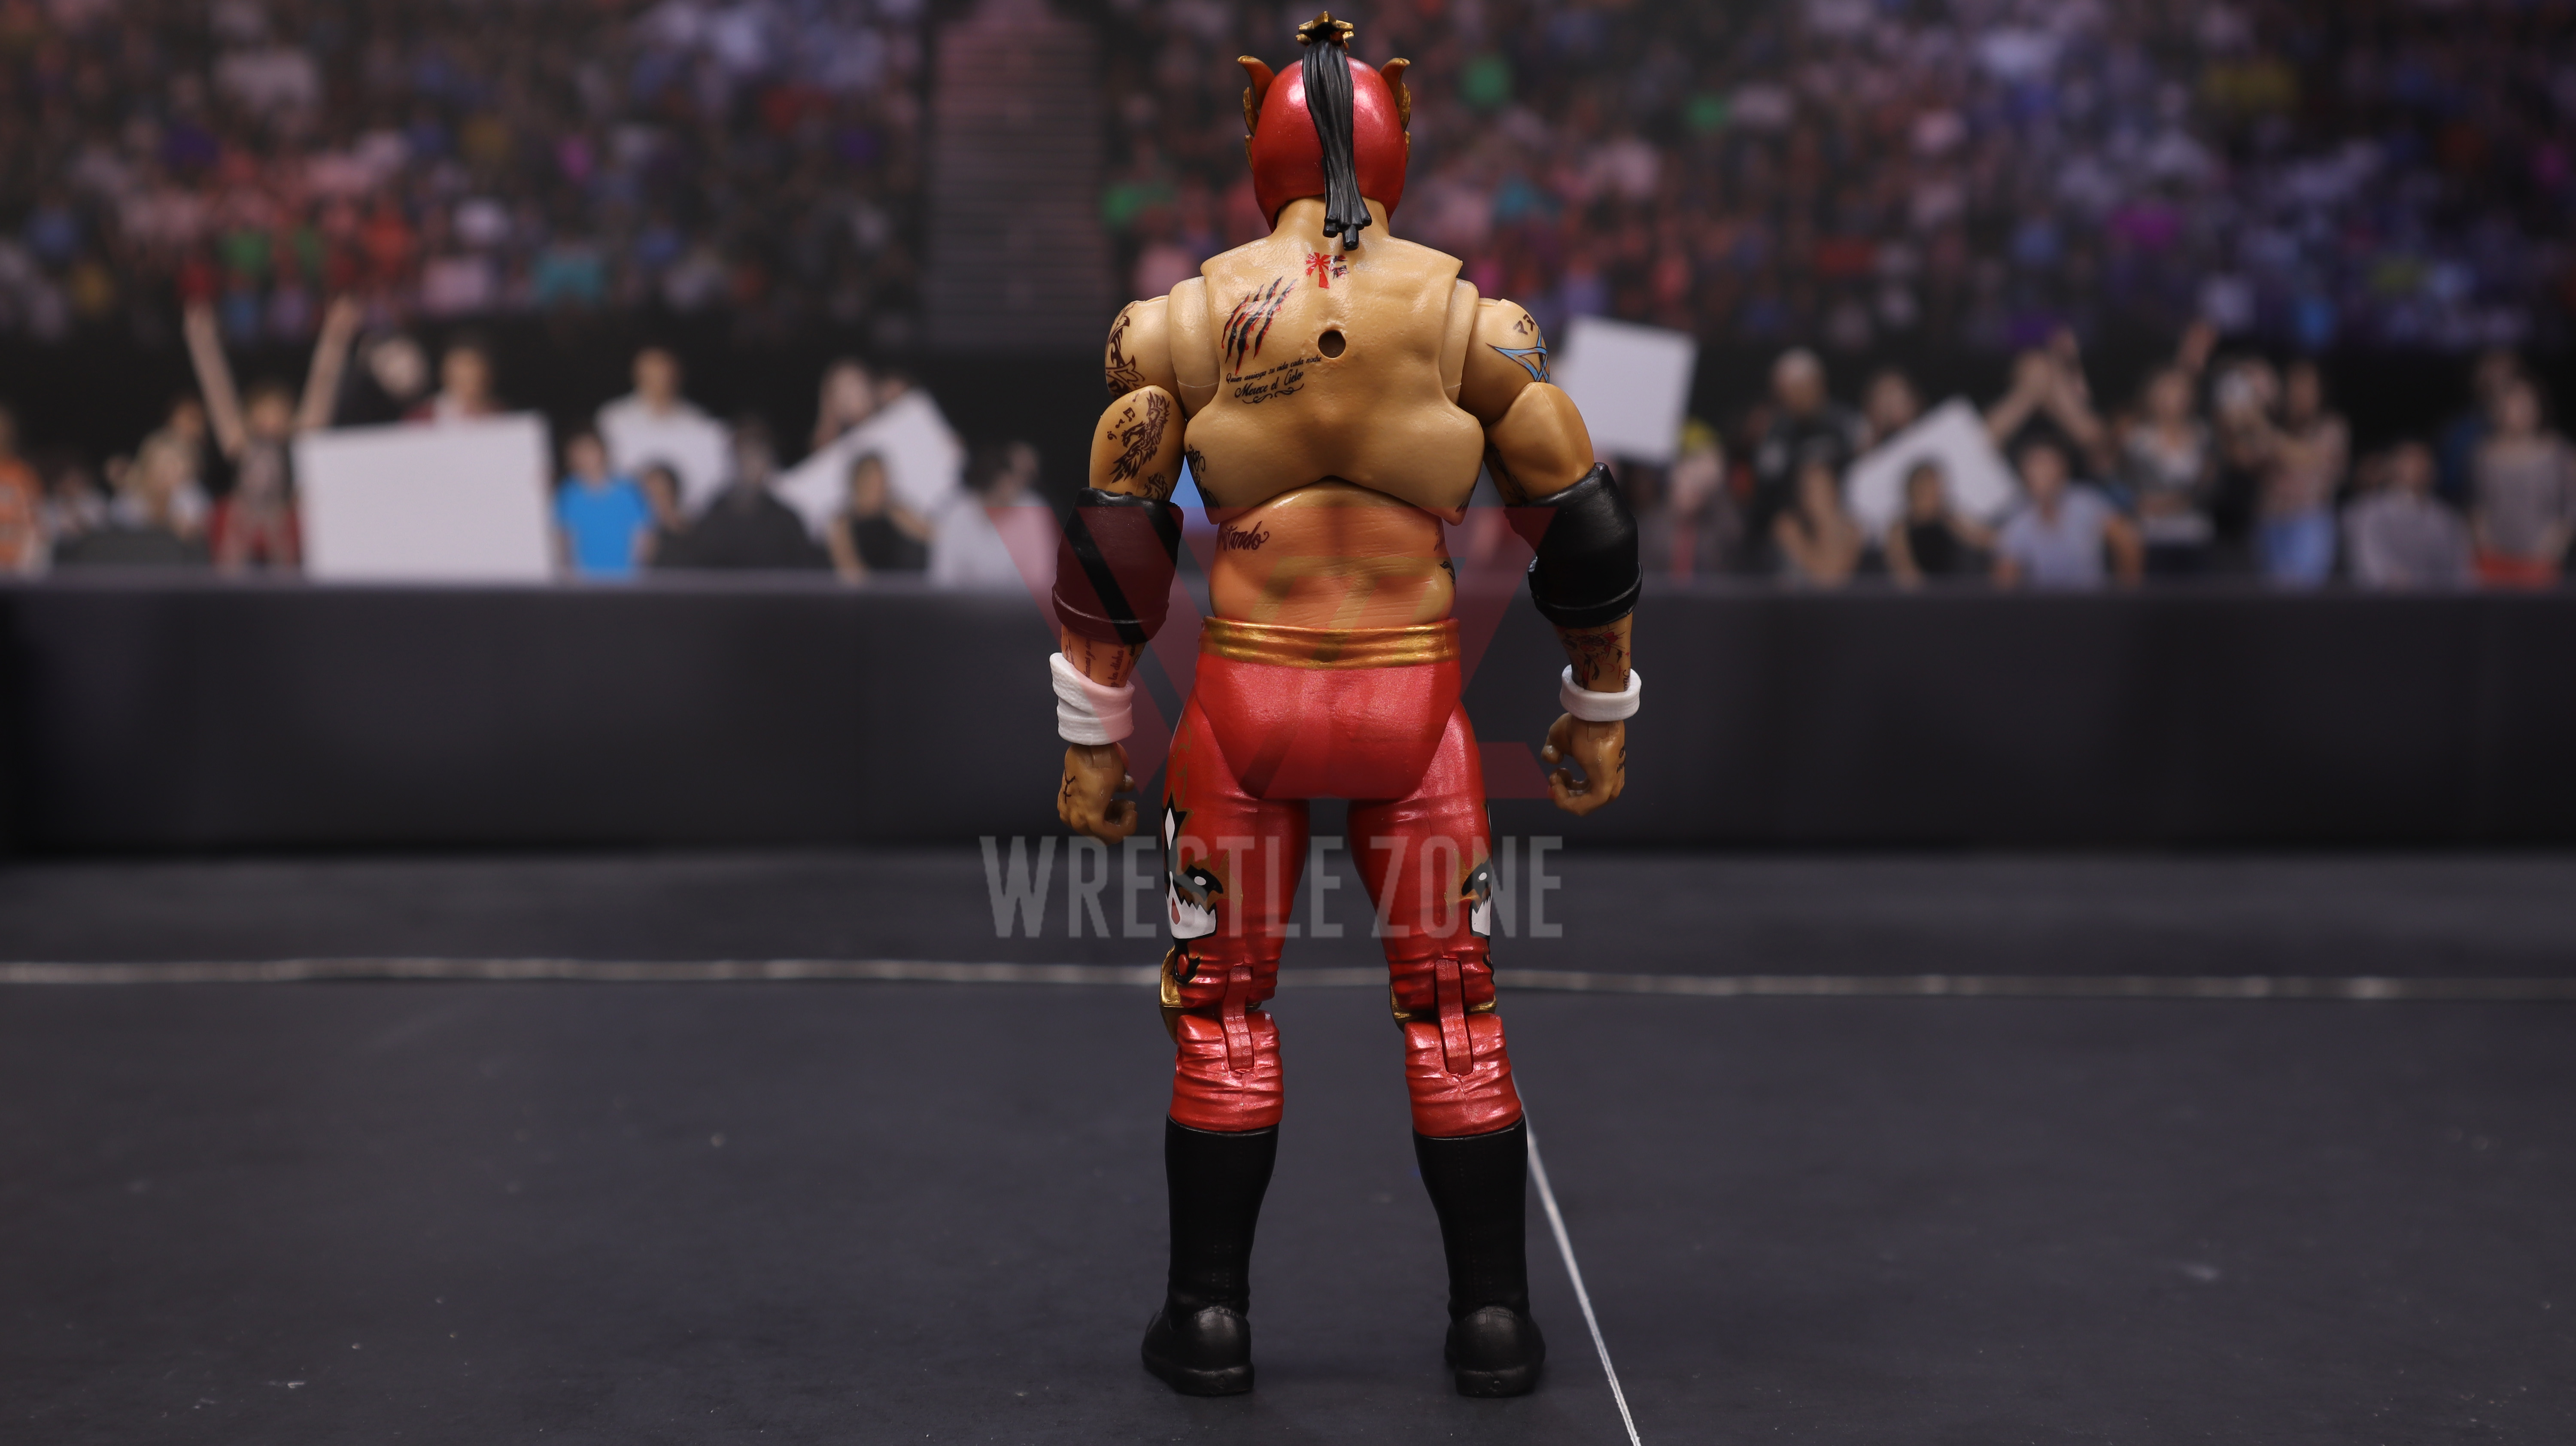 wz_legendsofluchalibre_series1_rey_20210219_2779